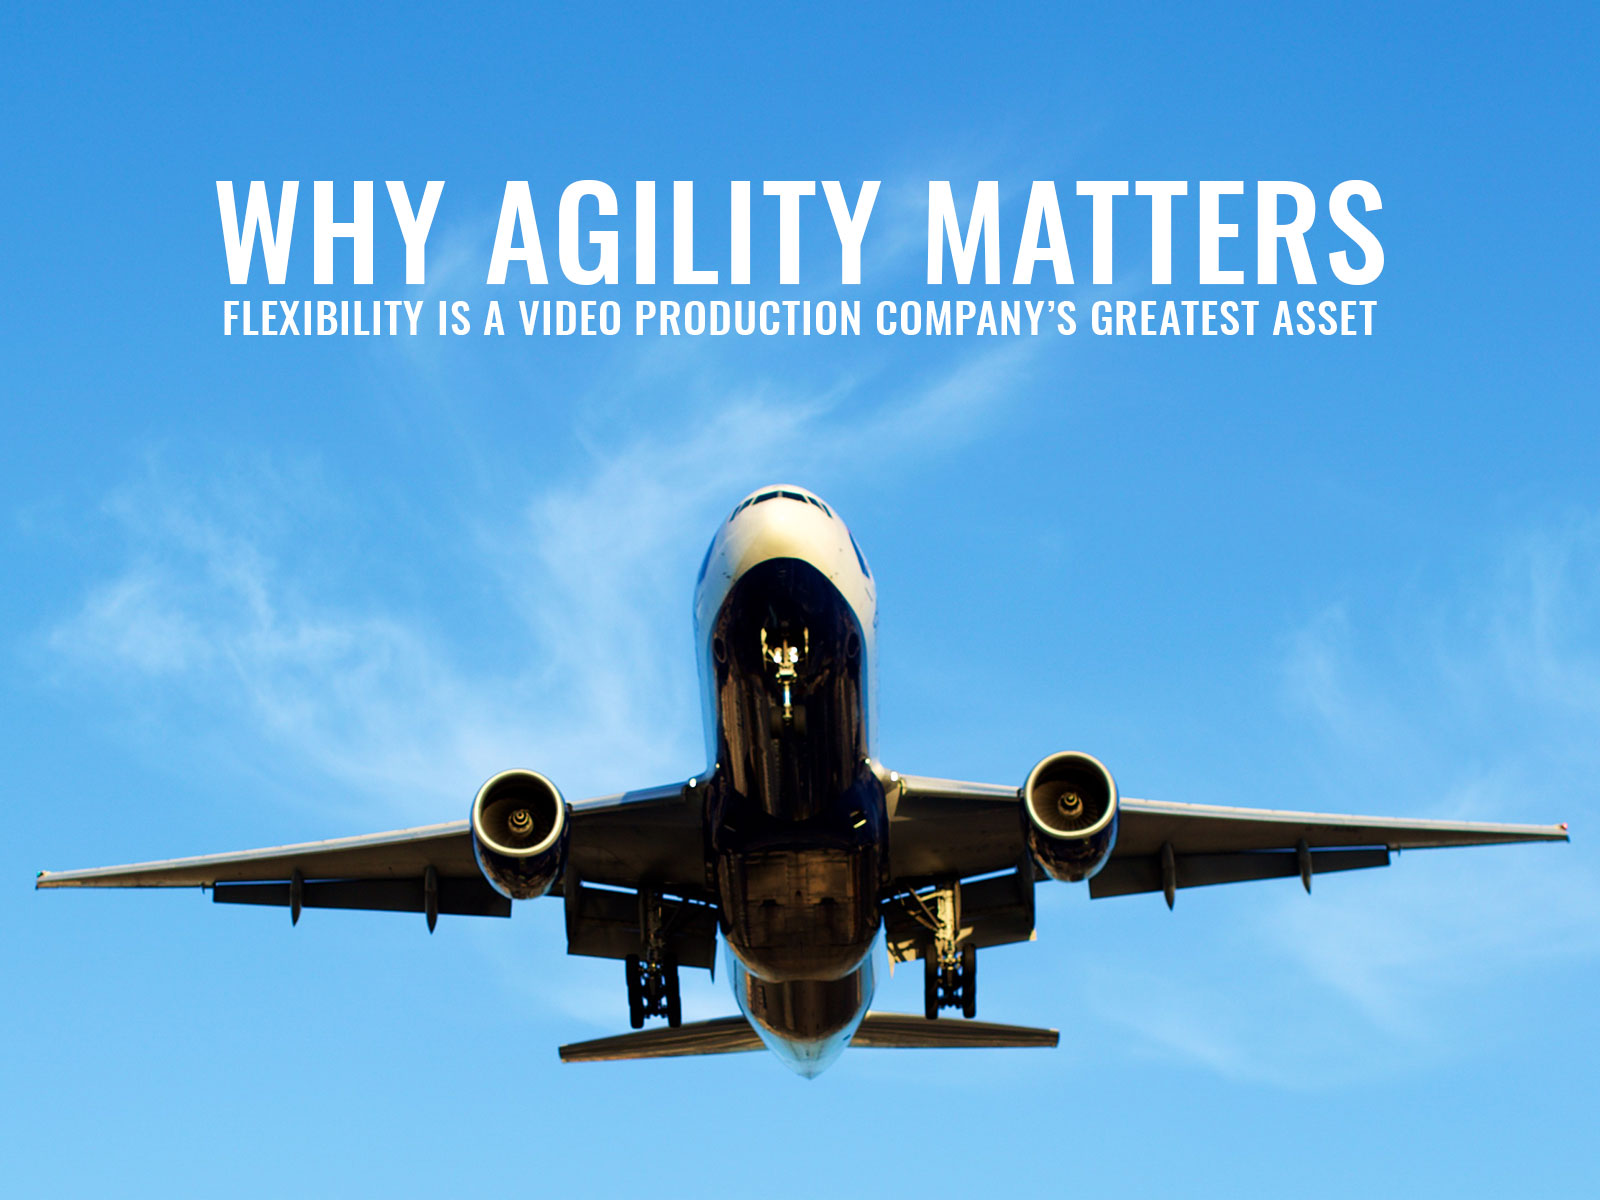 Why Agility Matters